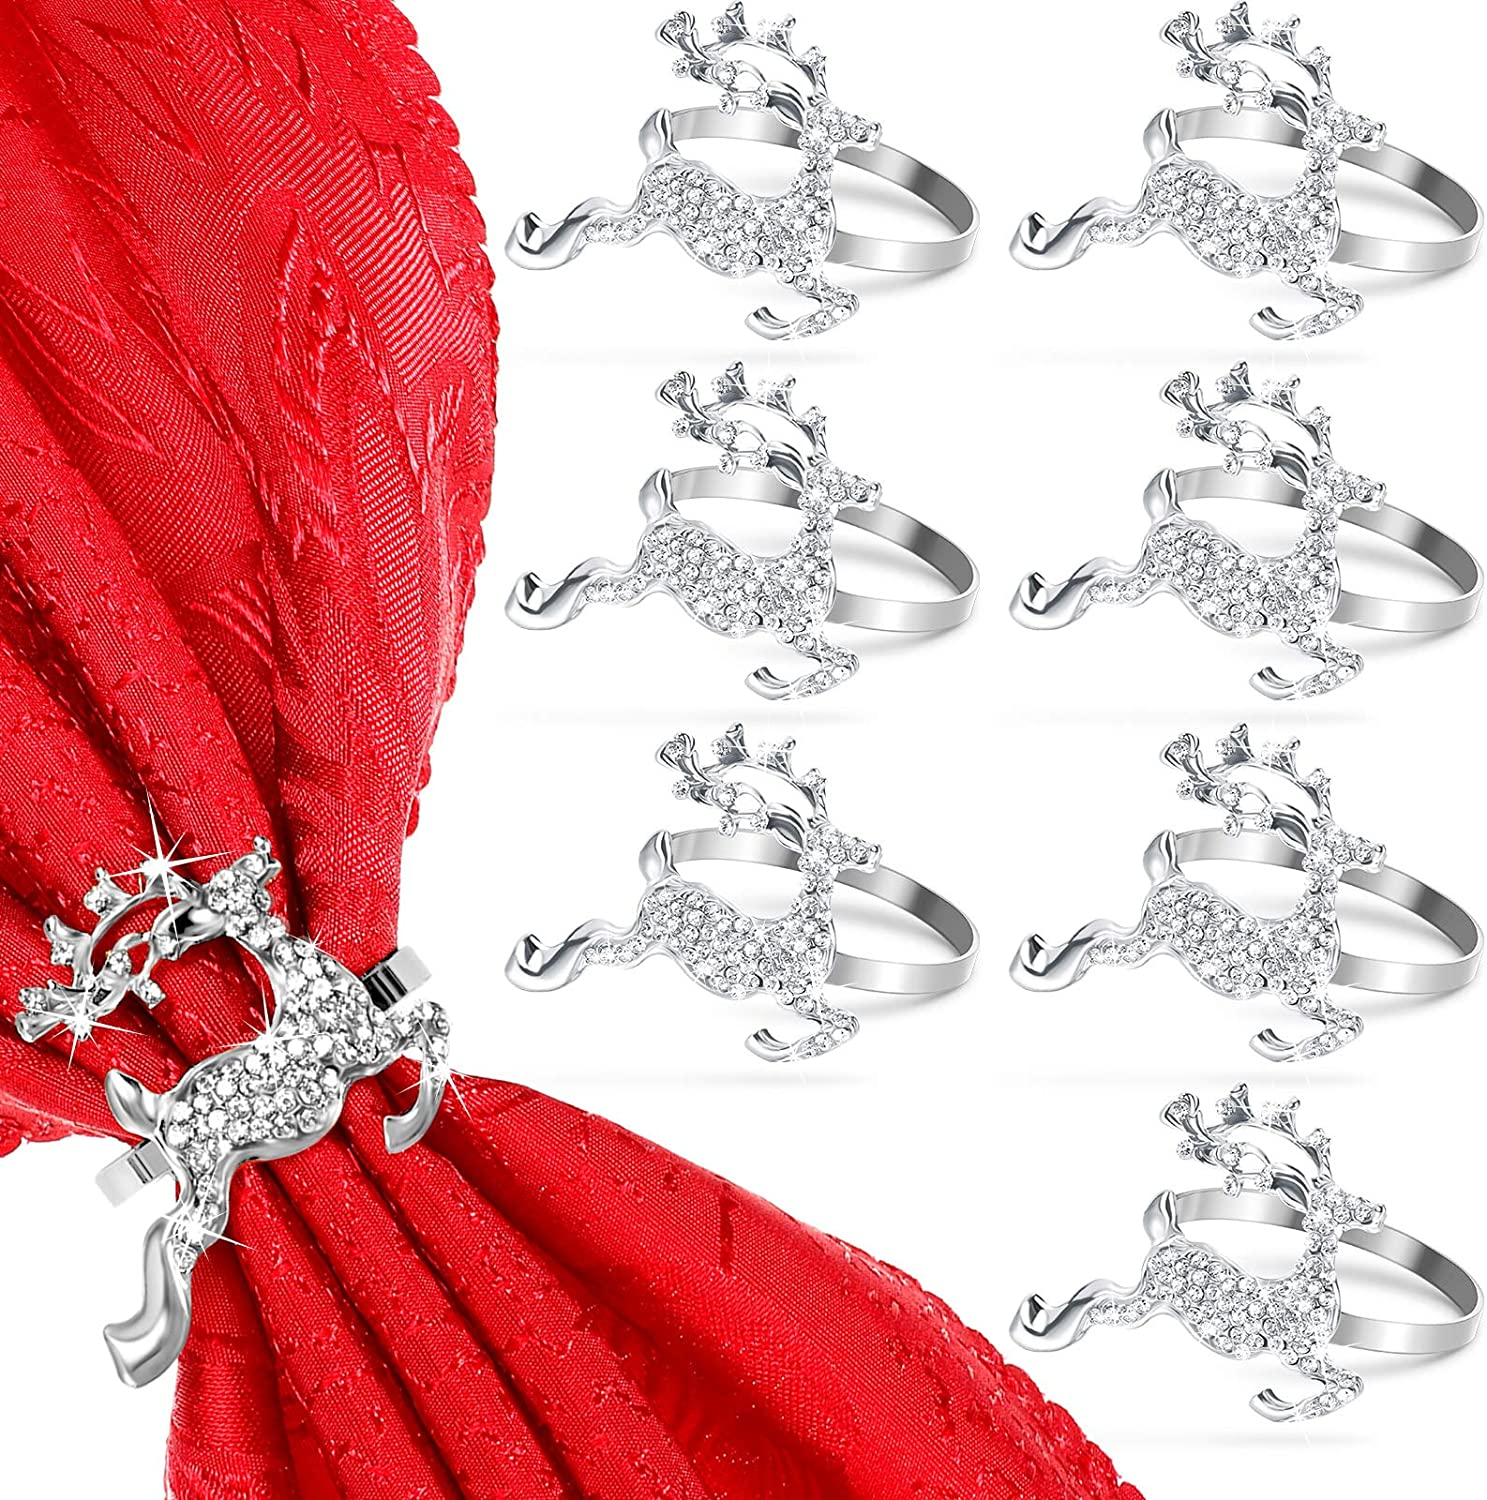 12 Pieces Elk Napkin Rings Holder Buckle Deer Napkin Ring Holder Christmas Napkin Rings with Rhinestones Alloy Metal Napkin Rings for Thanksgiving Christmas Wedding Party Dinner Table Decor (Silver)